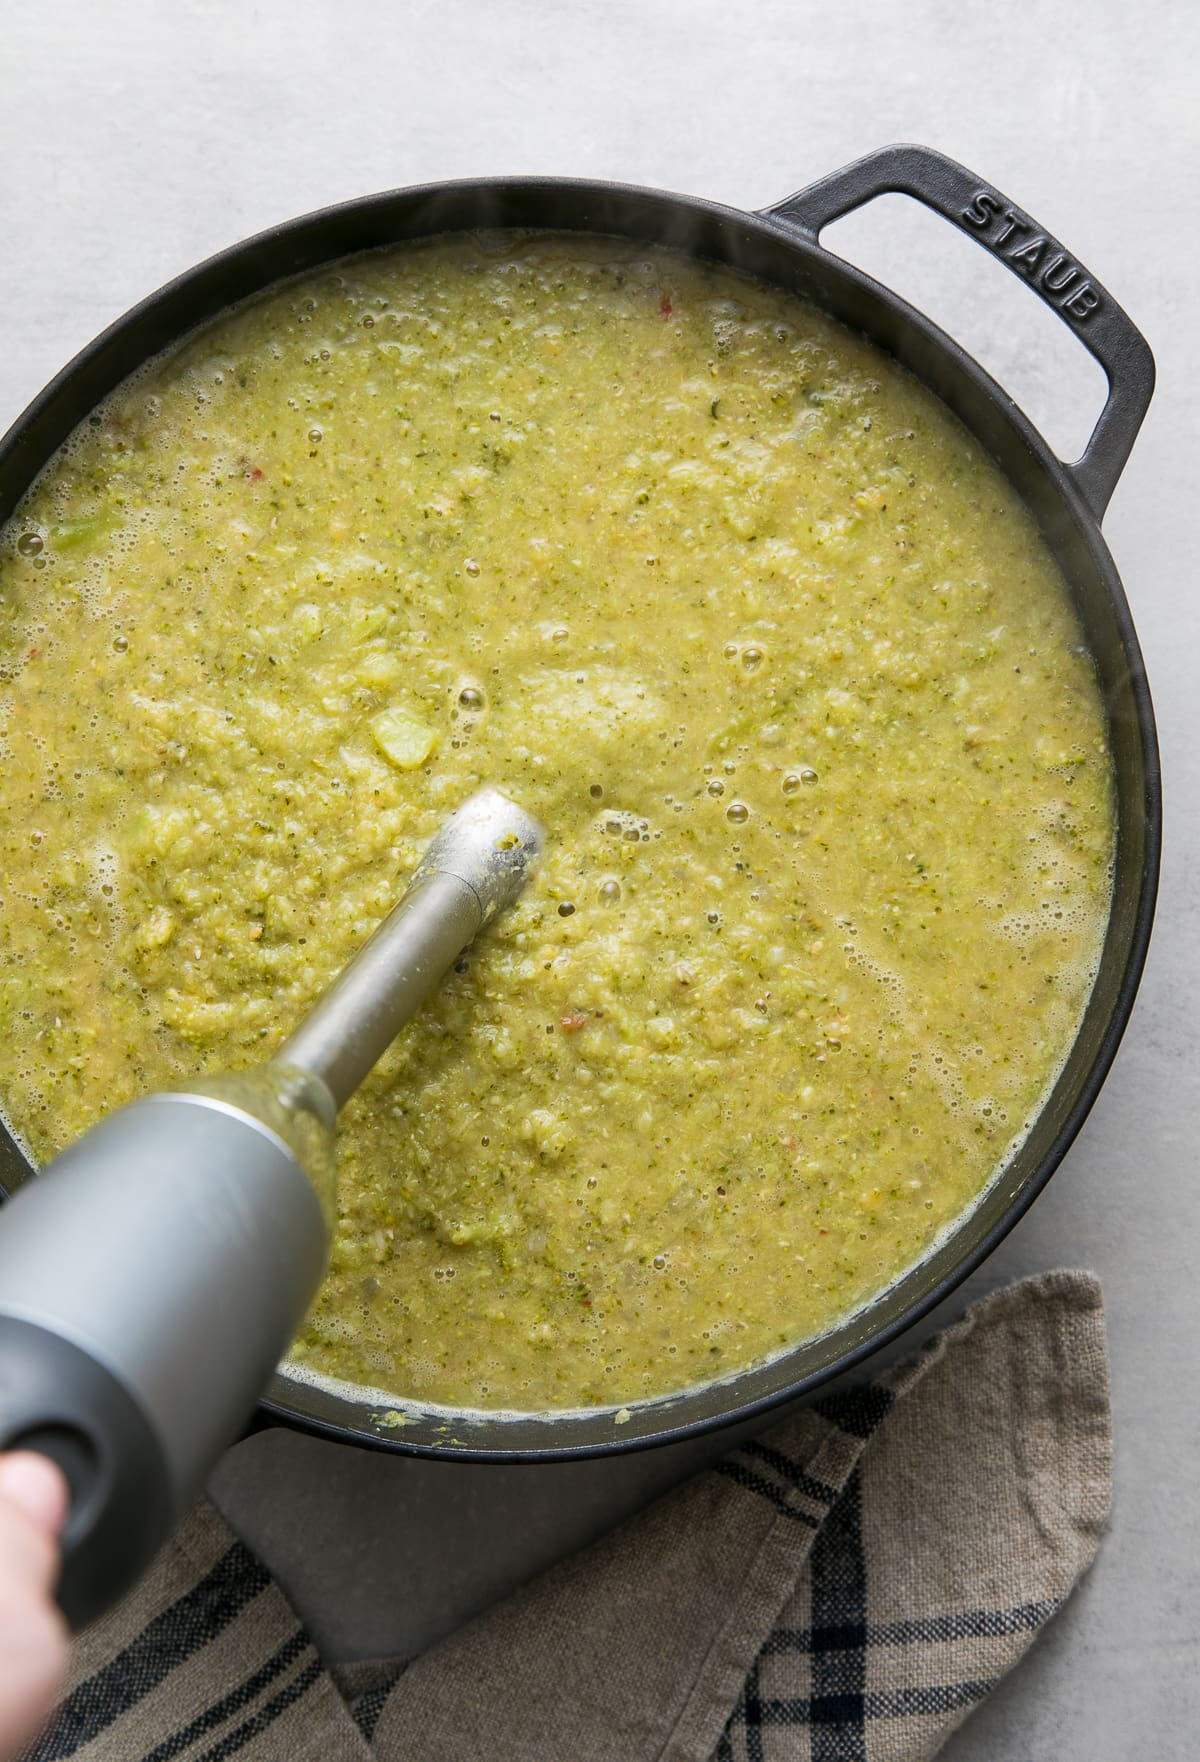 top down view showing the process of pureeing creamy broccoli red lentil soup in black pot.